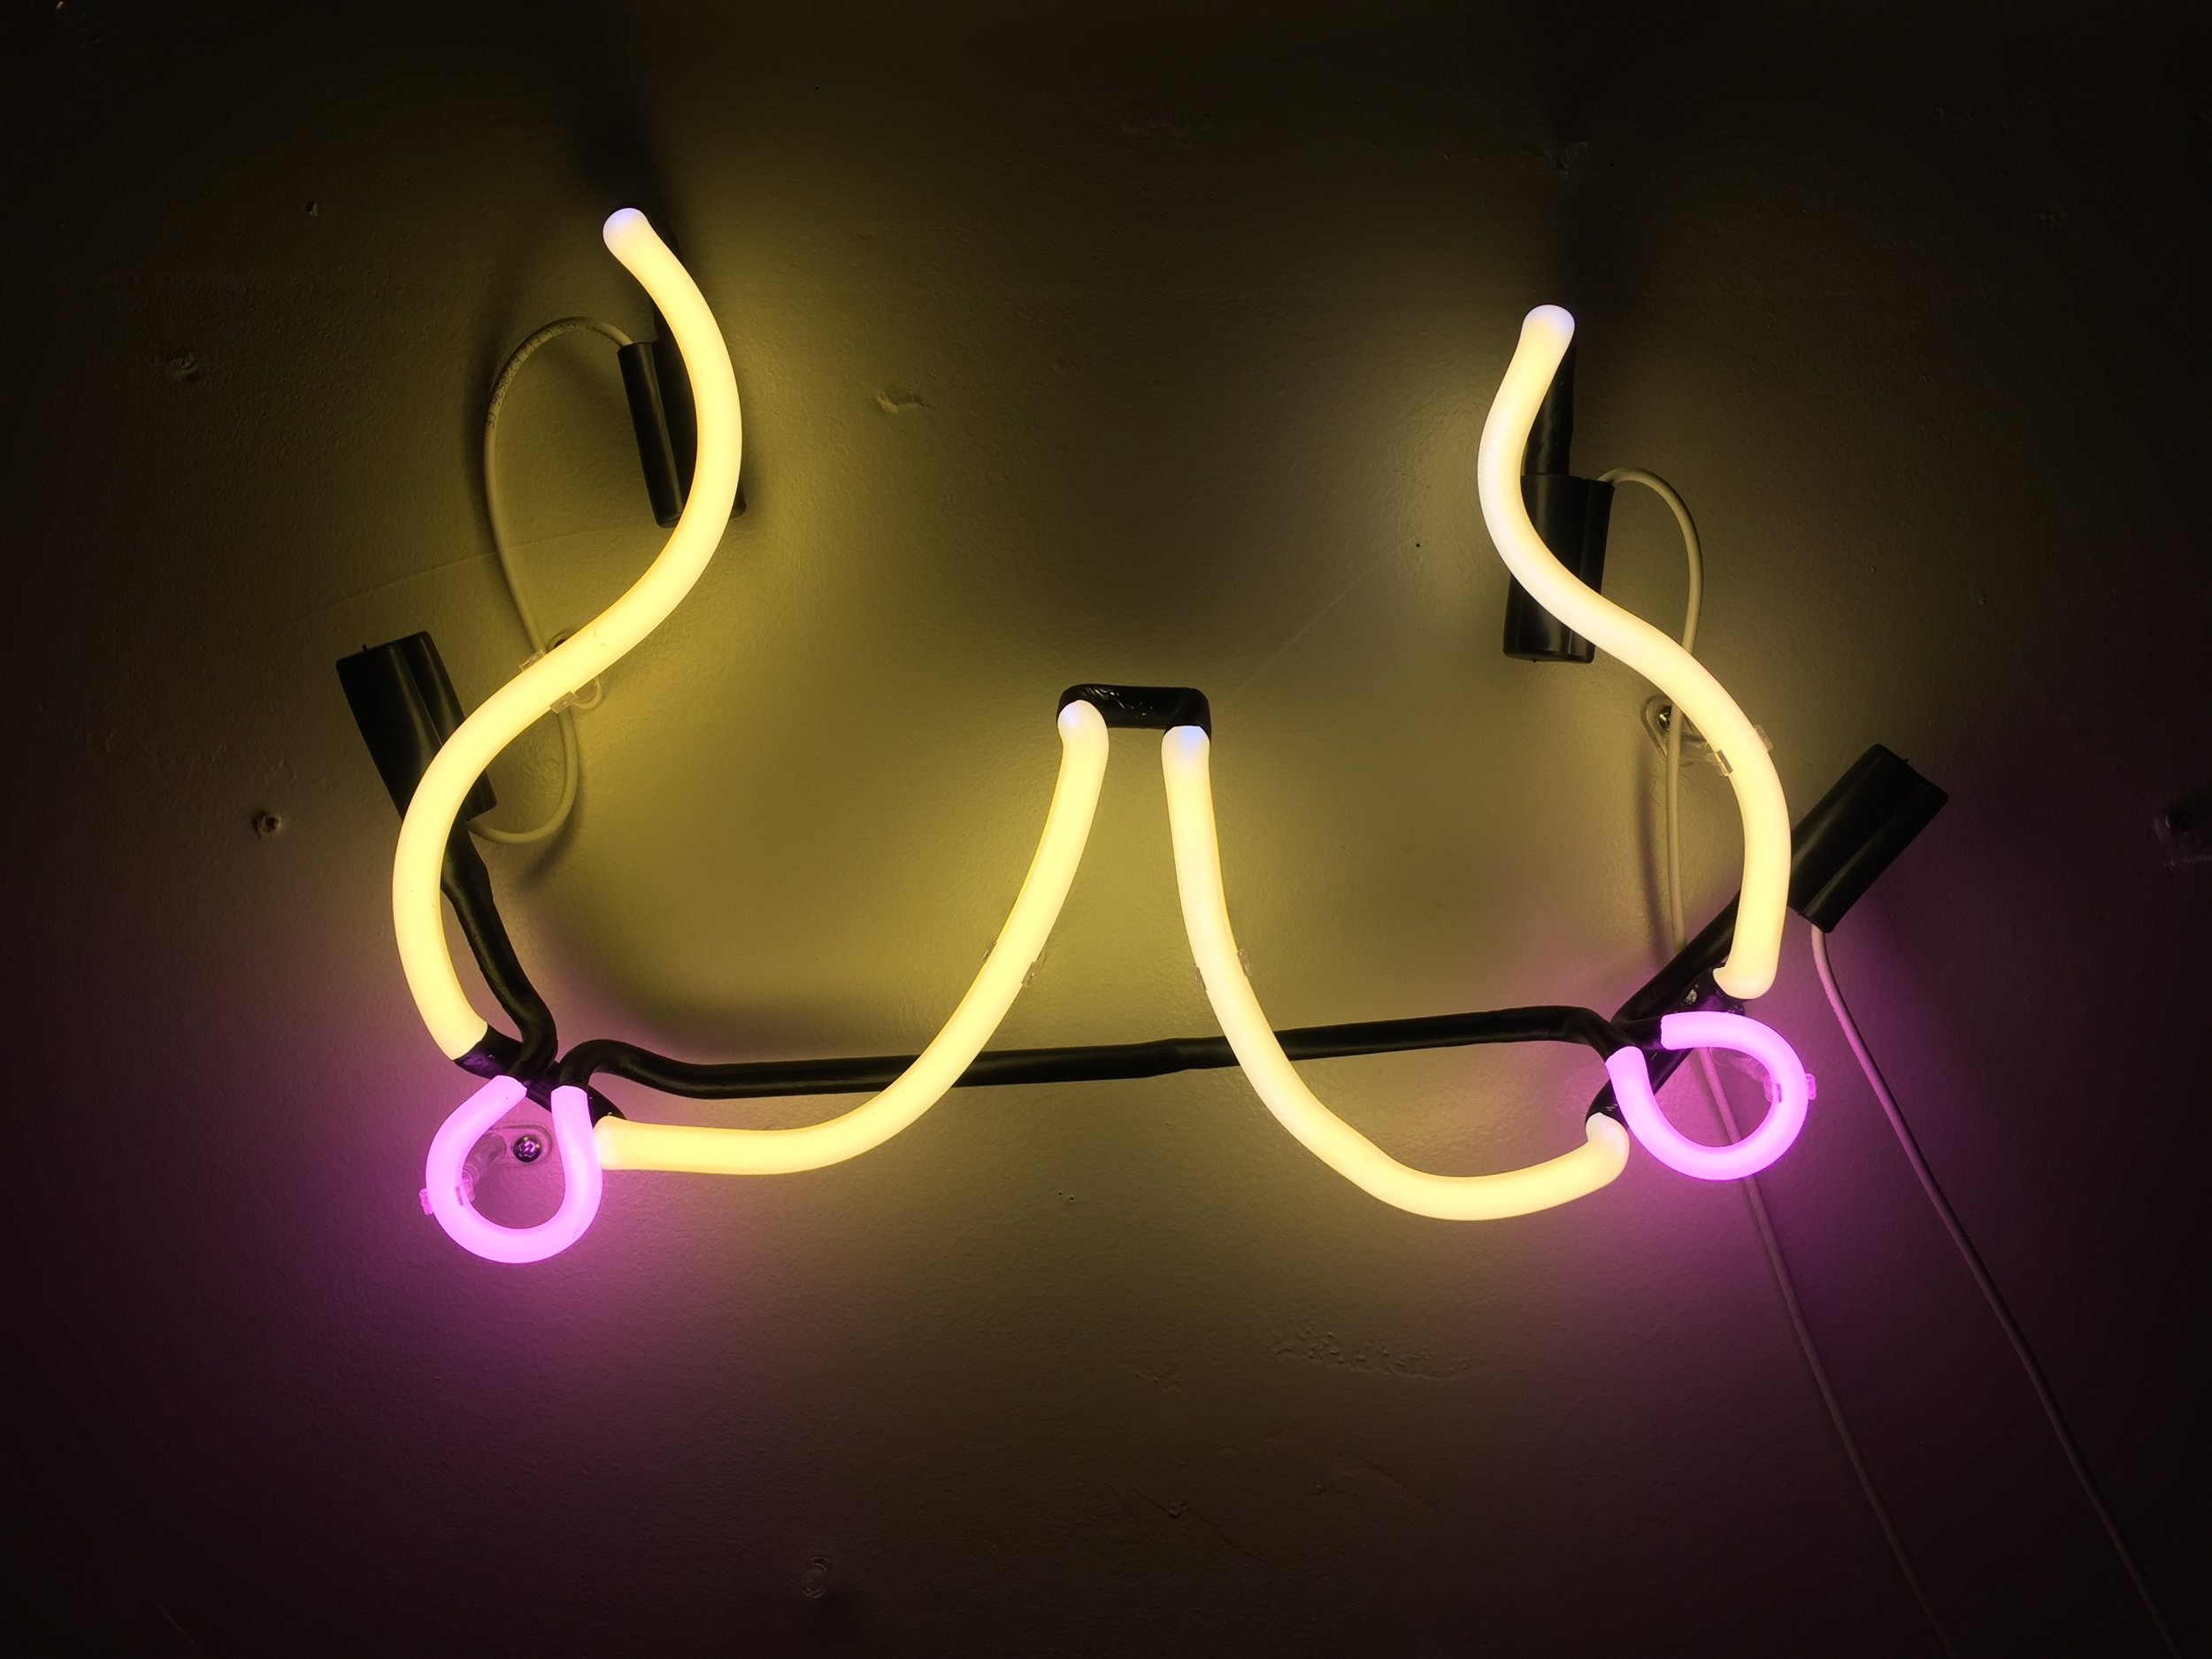 Boobs_neon_boobies_neonart.JPG